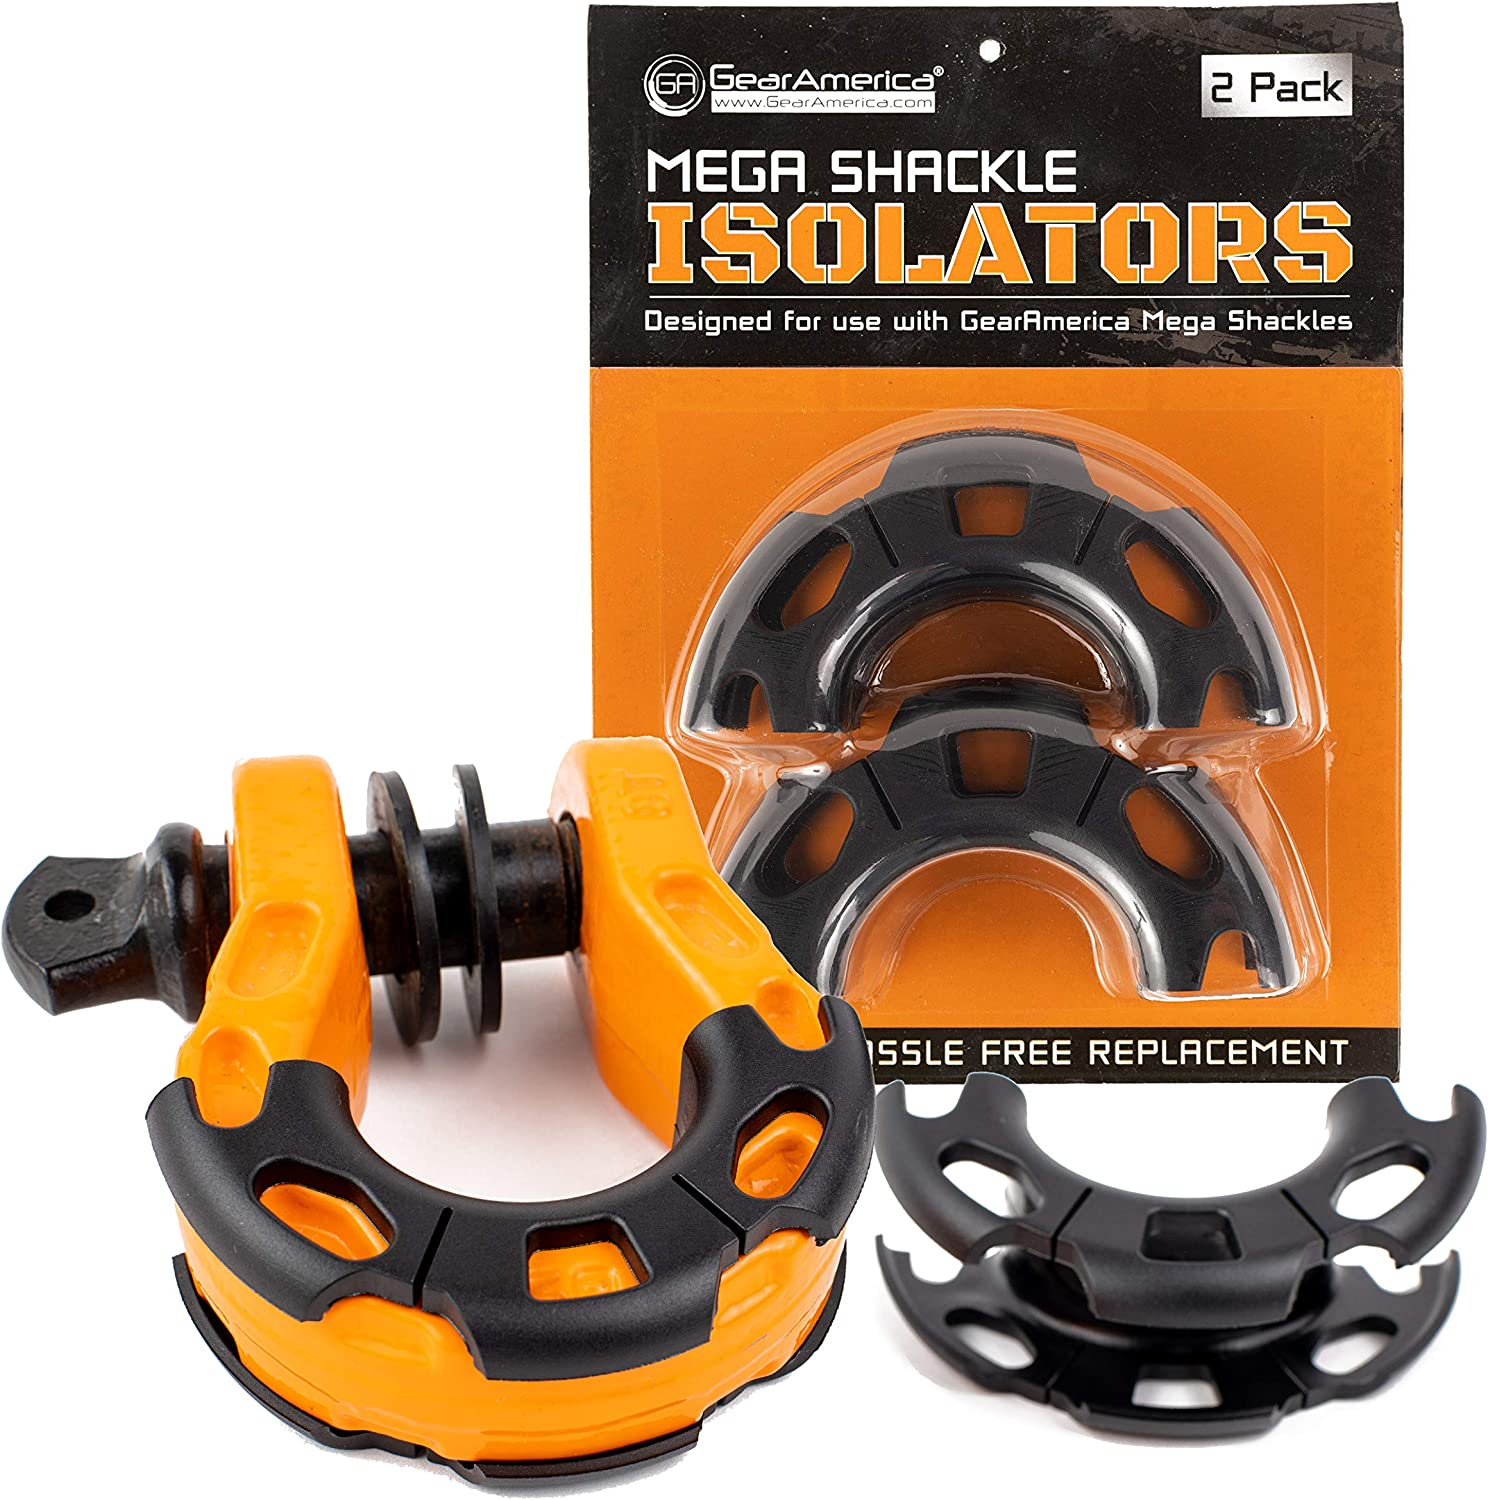 GearAmerica Mega Shackles Isolators (2PK)   Fits Exclusively GA Mega Shackles - Will Not Fit a 3/4 D Ring   Help Prevent Corrosion and Protect Finishes While Reducing Noise and Rattling